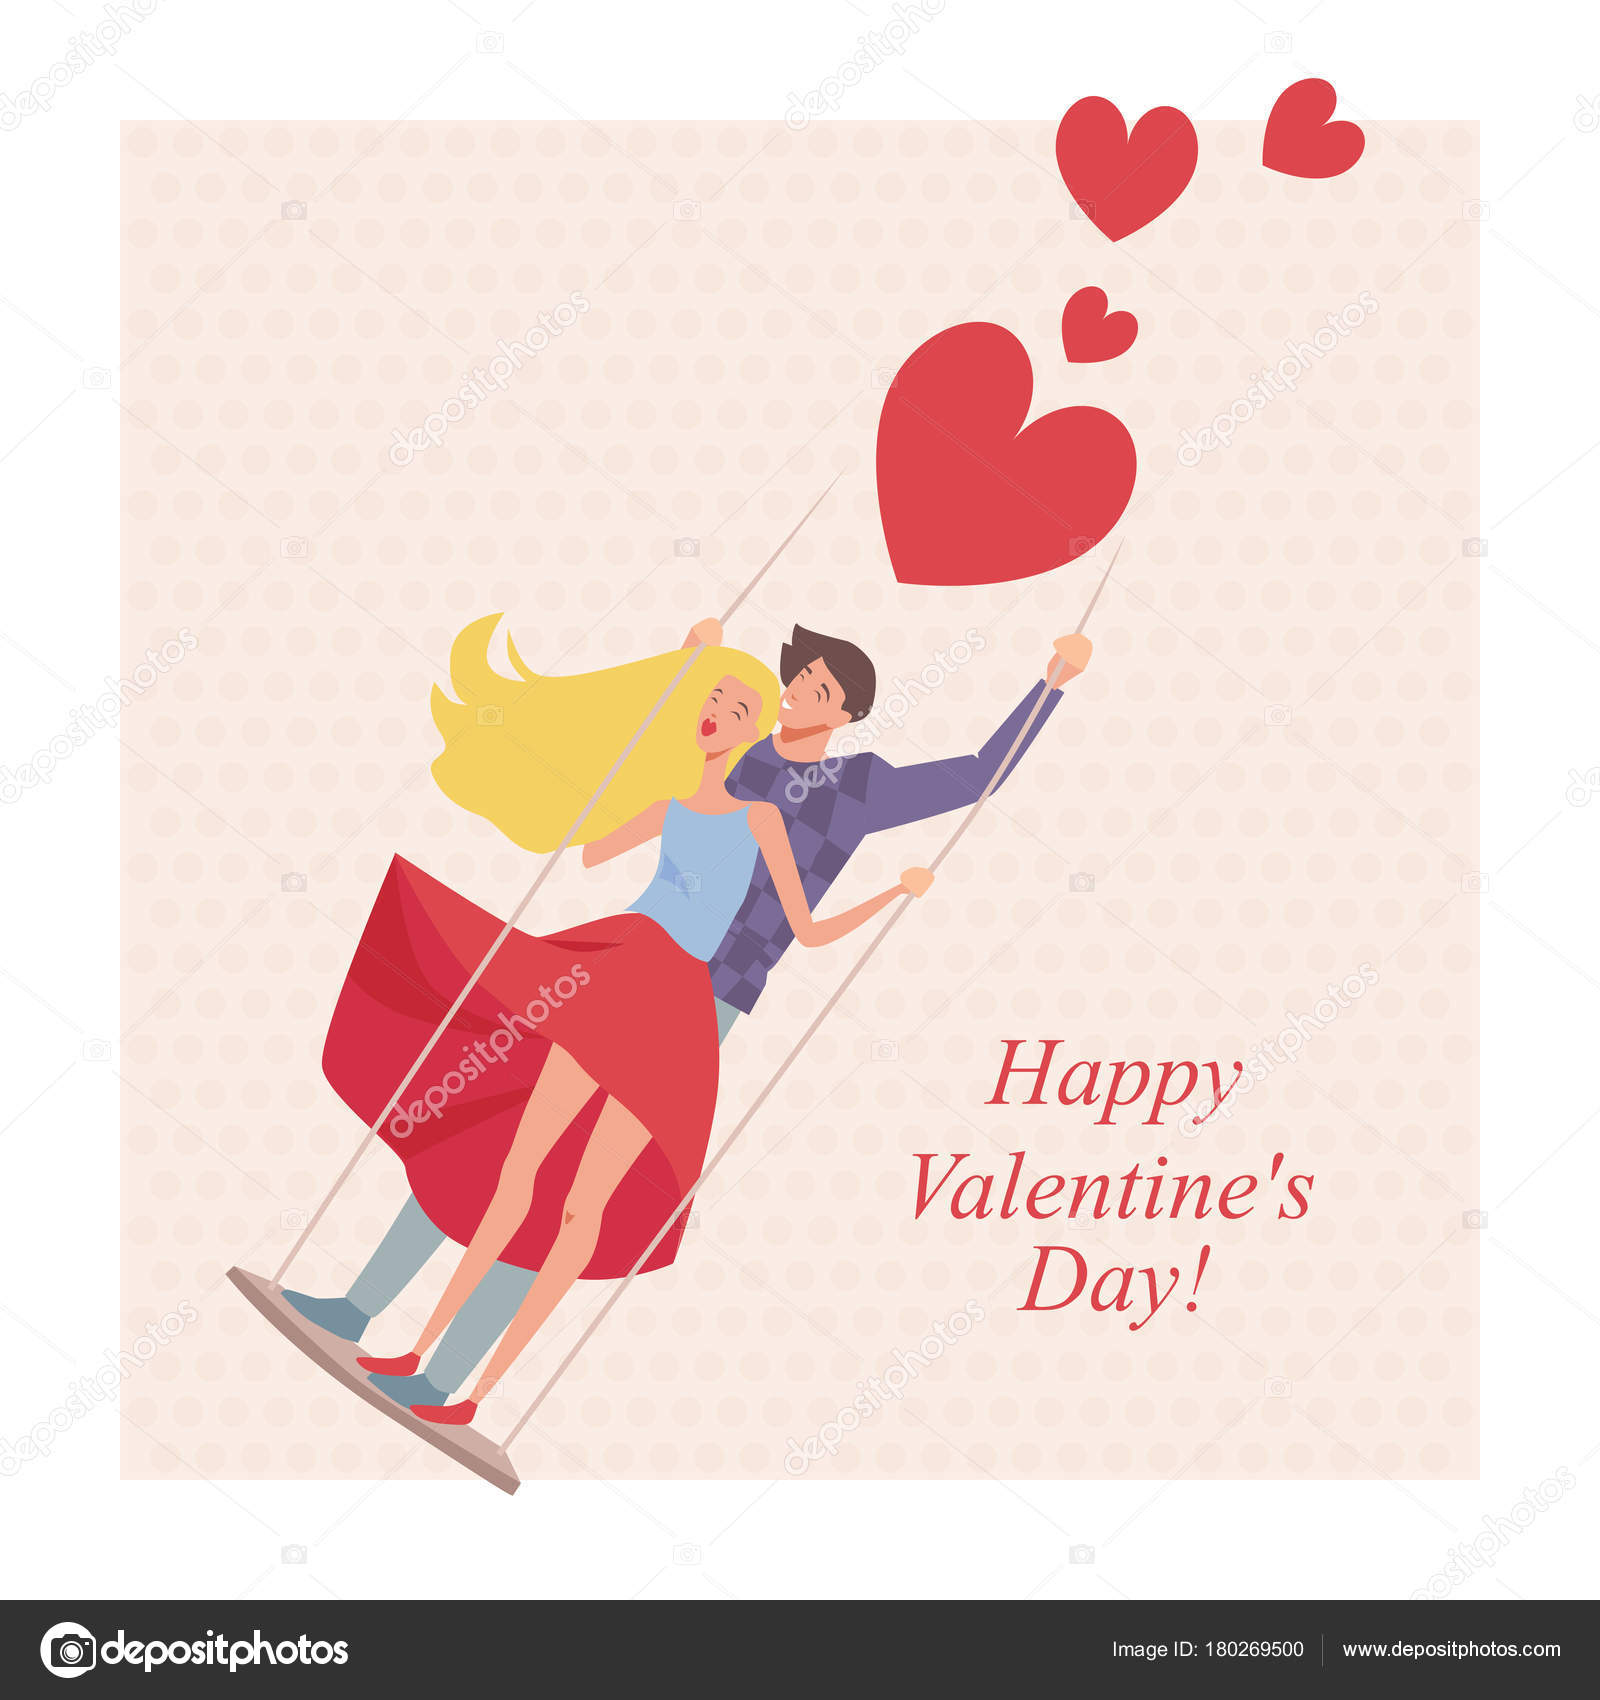 Greeting card valentine day cartoon style lovers swing stock greeting card valentine day cartoon style lovers swing stock vector kristyandbryce Images